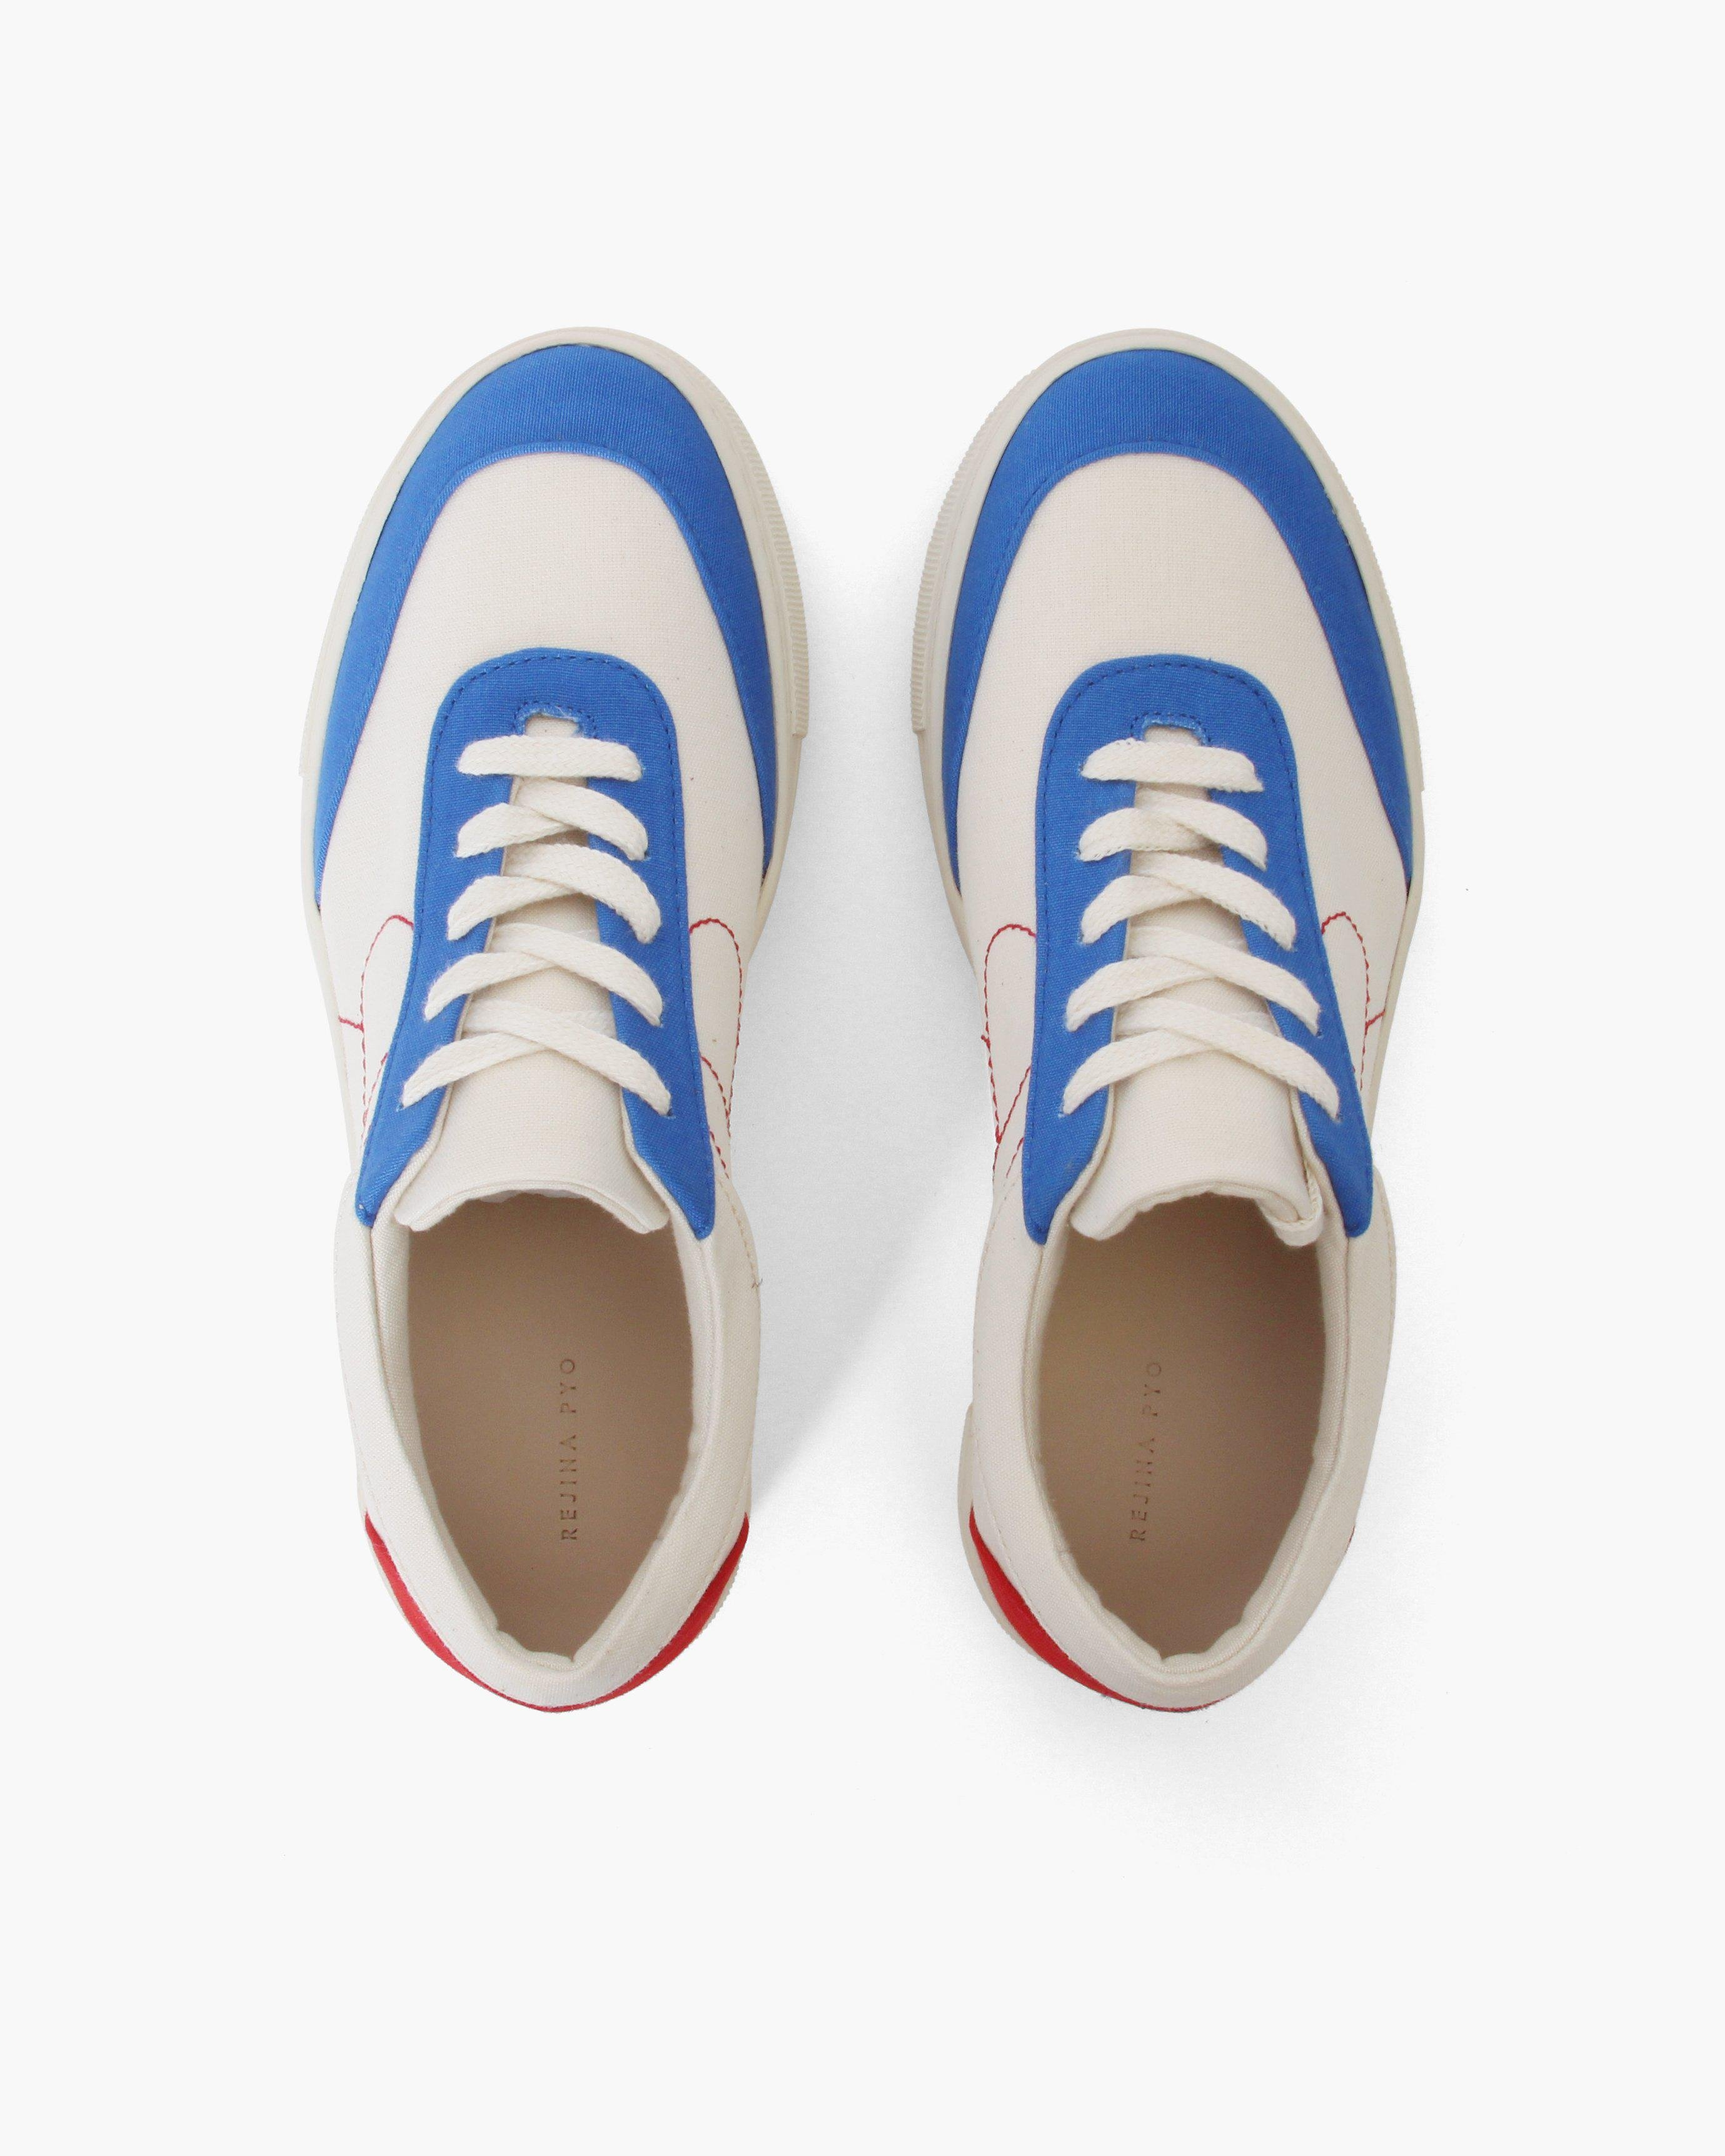 Bailey Sneakers Cotton Canvas Blue + Red - SALE 3